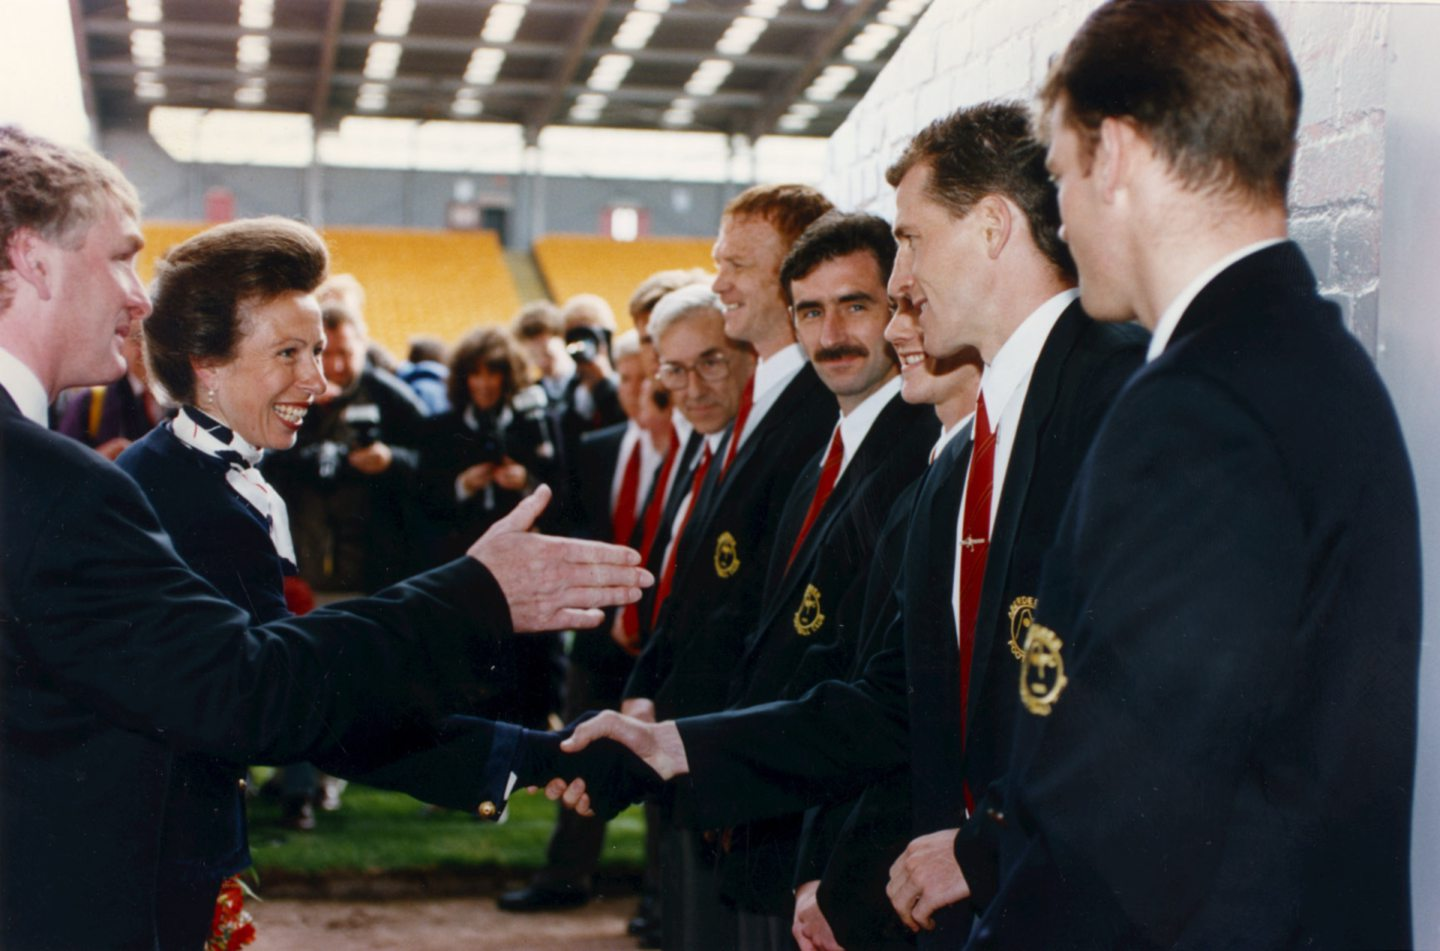 The Princess Royal was highly amused when she opened the  Richard Donald stand at Pittodrie in 1993. Here she meets Dons defender Brian Irvine as Aberdeen FC vice-chairman Ian Donald introduces her to the staff and players.